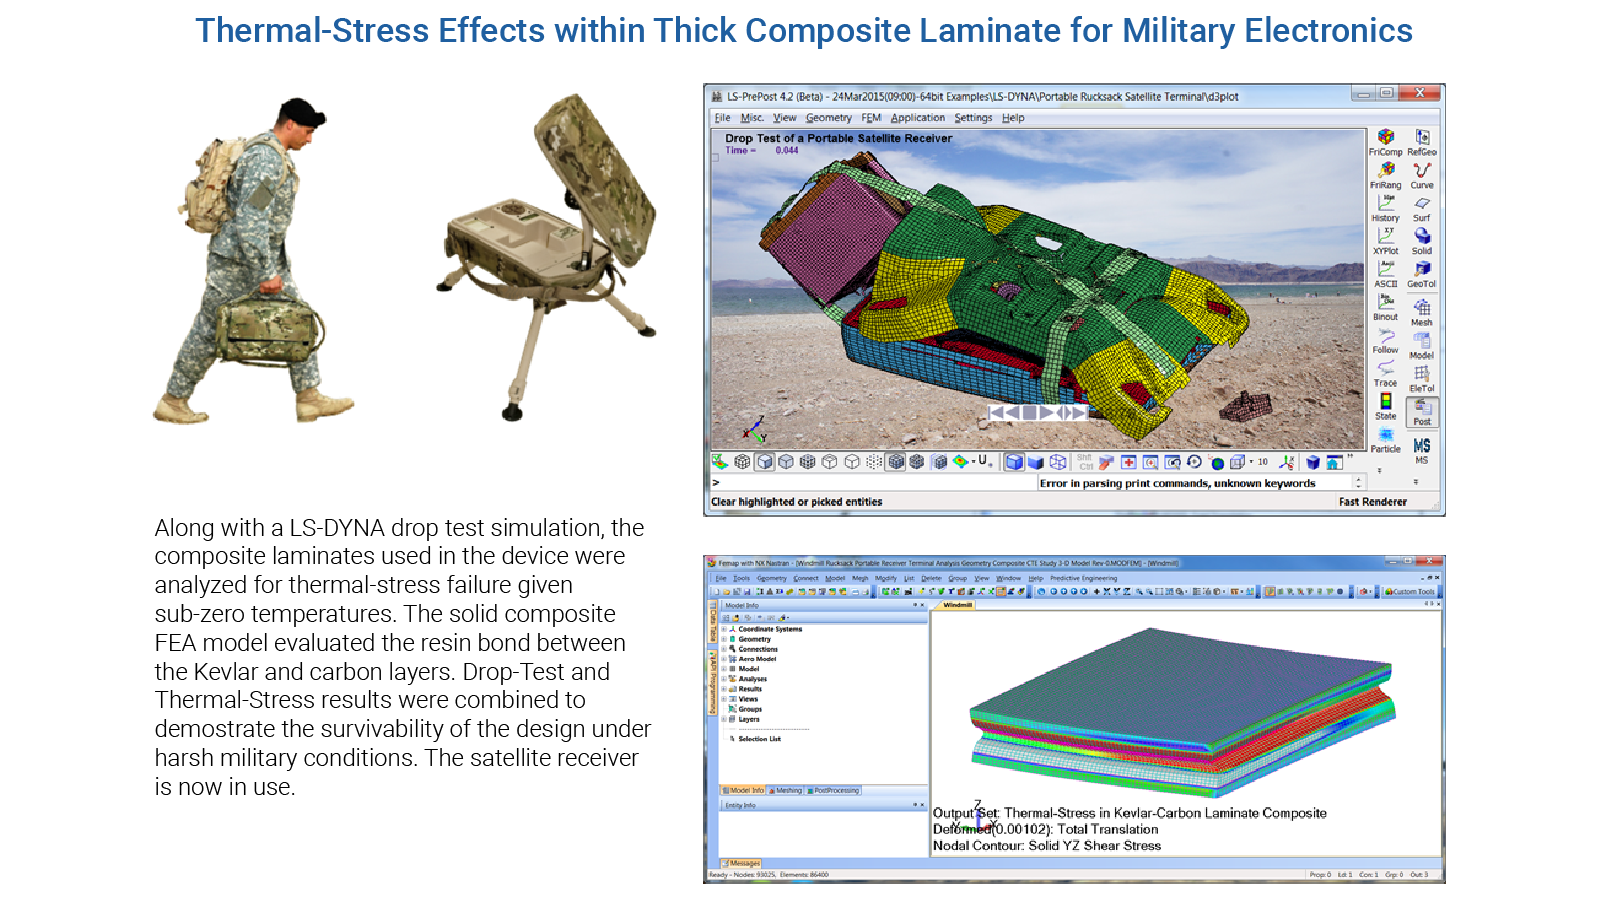 Thermal-Stress Effects within Thick Composite Laminate for Military Electronics